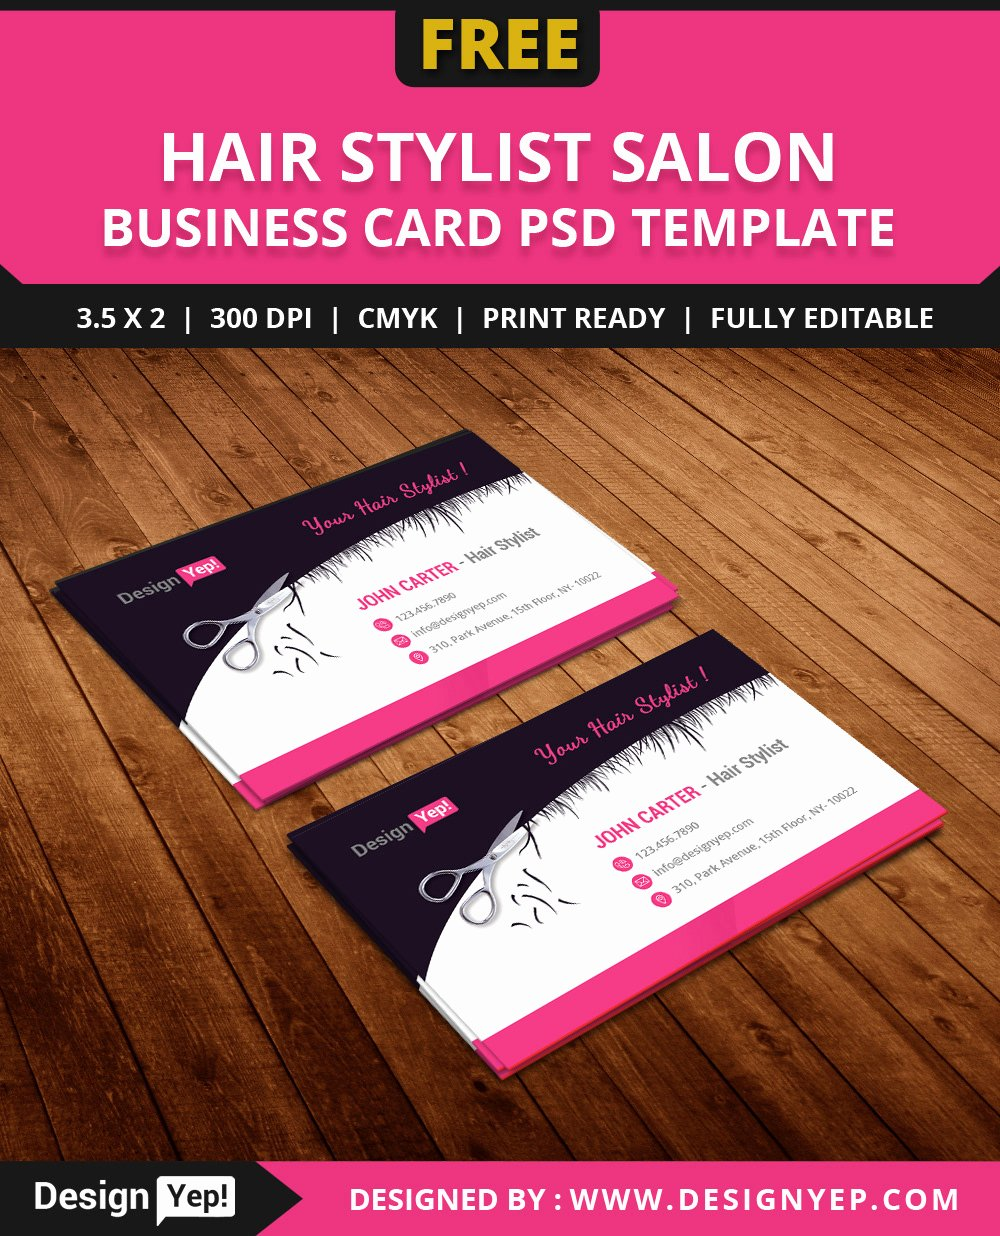 Beauty Salon Business Card New Free Hair Stylist Salon Business Card Template Psd On Behance